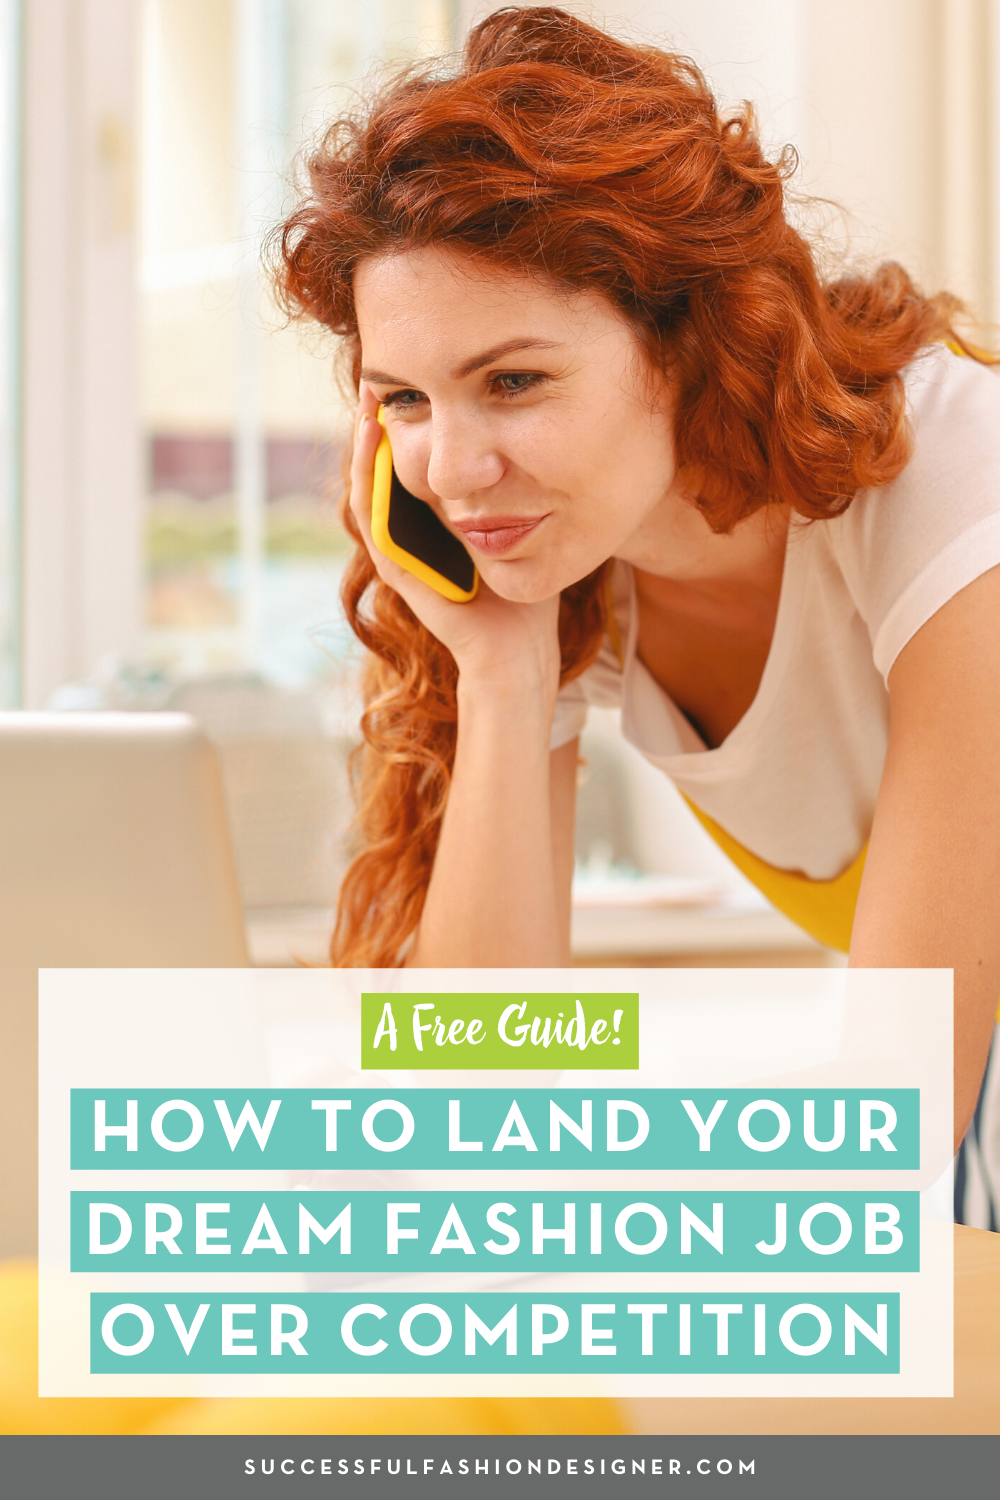 How To Get A Fashion Design Job The Free Ultimate Guide Fashion Design Jobs Fashion Jobs Career In Fashion Designing